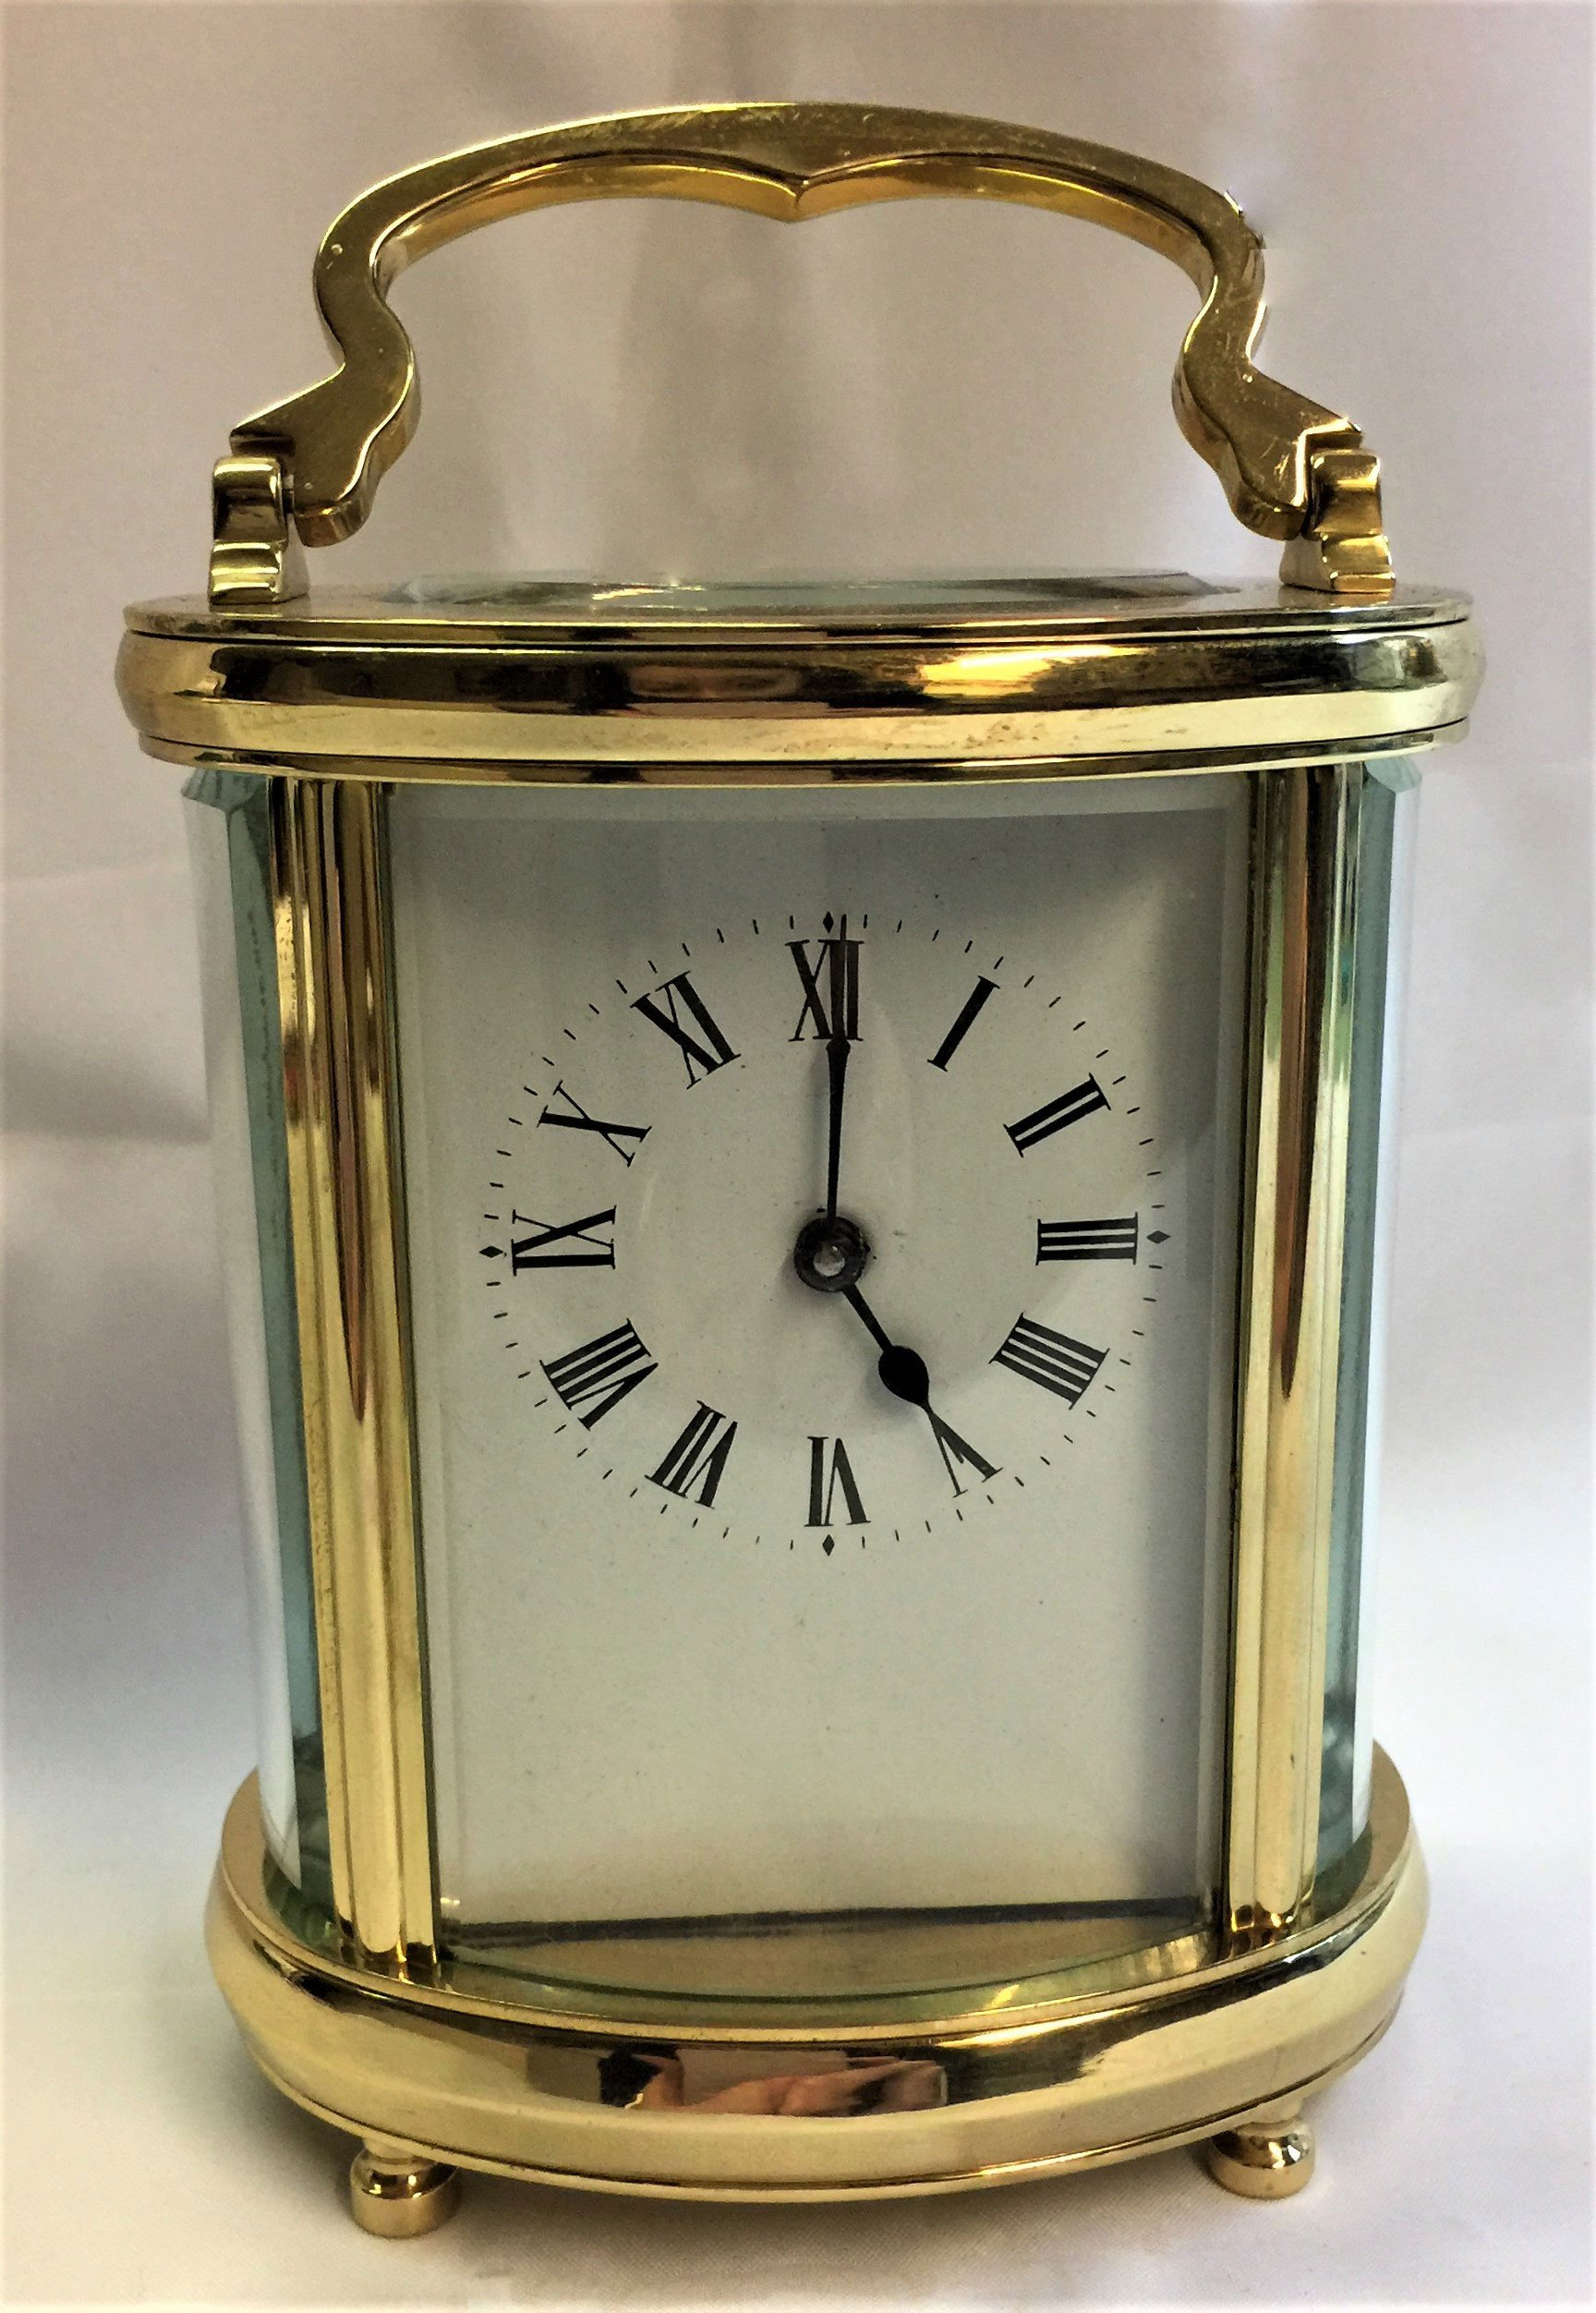 Oval French carriage timepiece